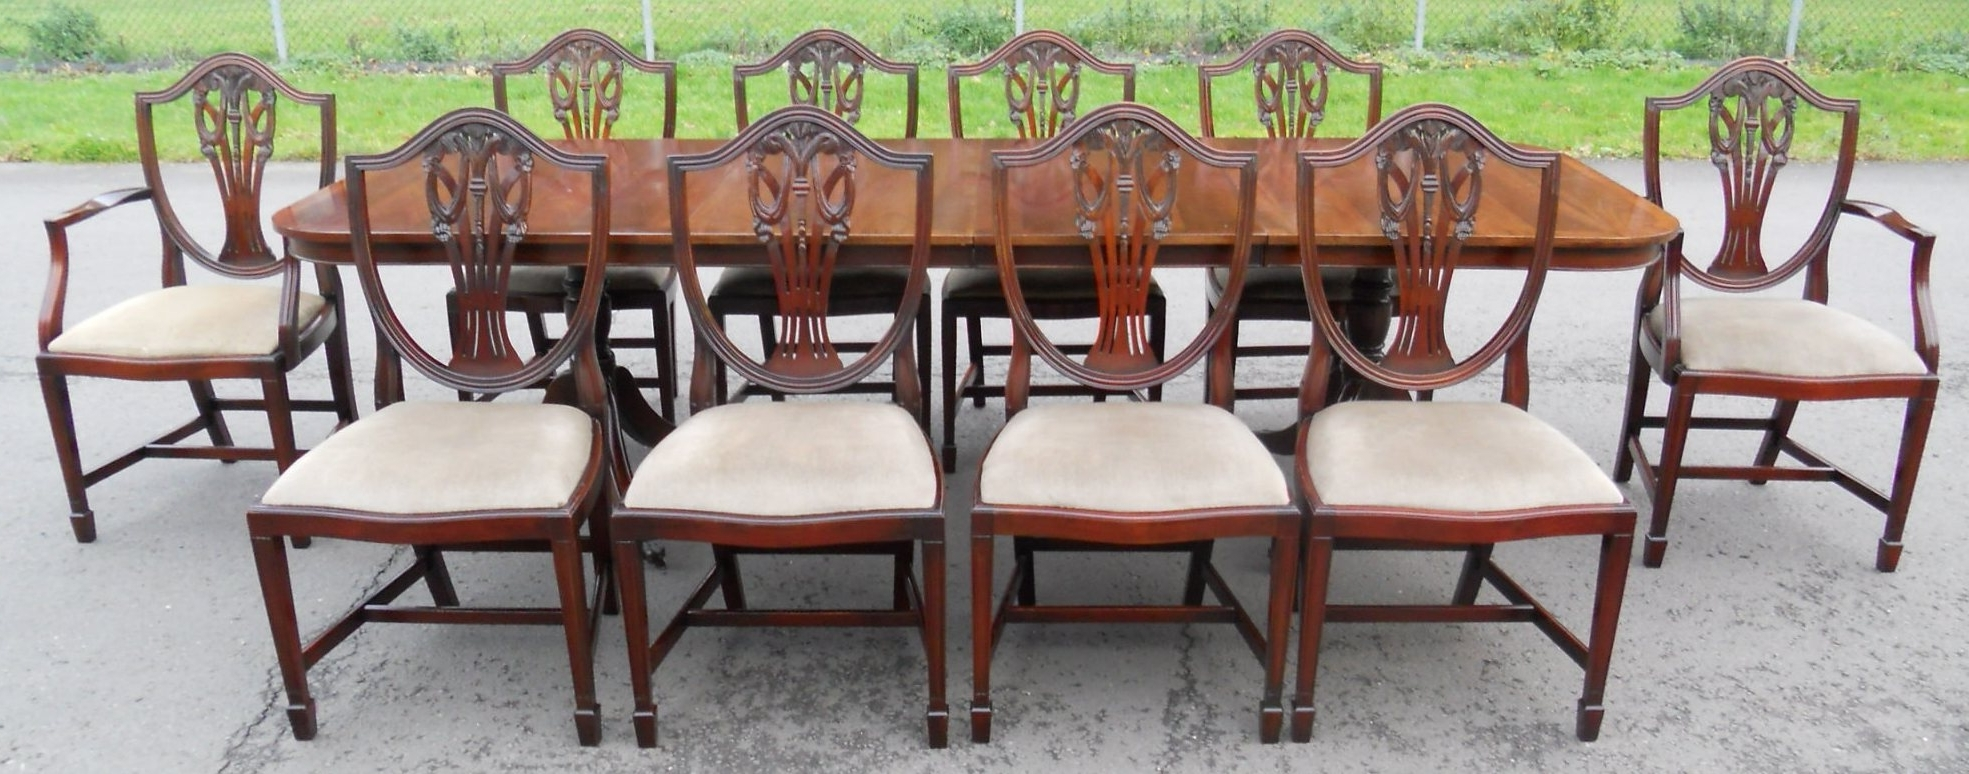 Newest Mahogany Extending Dining Tables And Chairs In Set Of Ten Mahogany Dining Chairs & Matching Extending Dining Table (View 17 of 25)